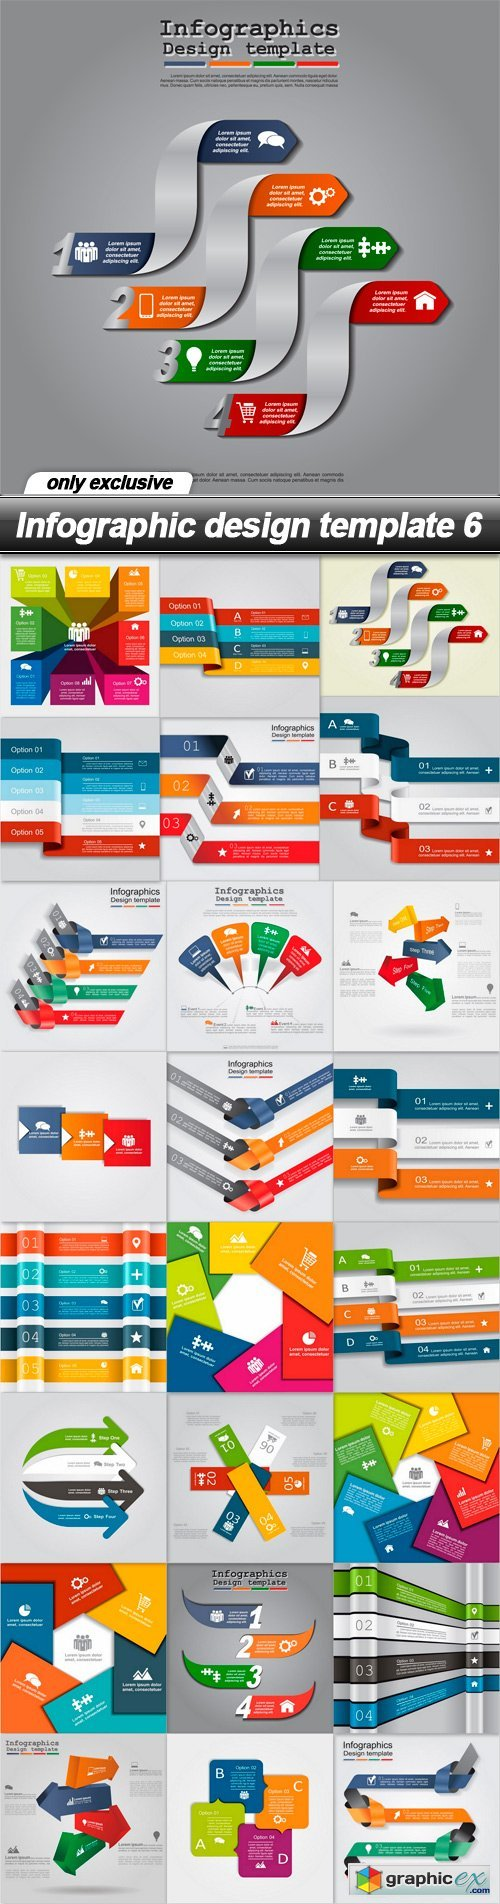 Infographic design template 6 - 25 EPS